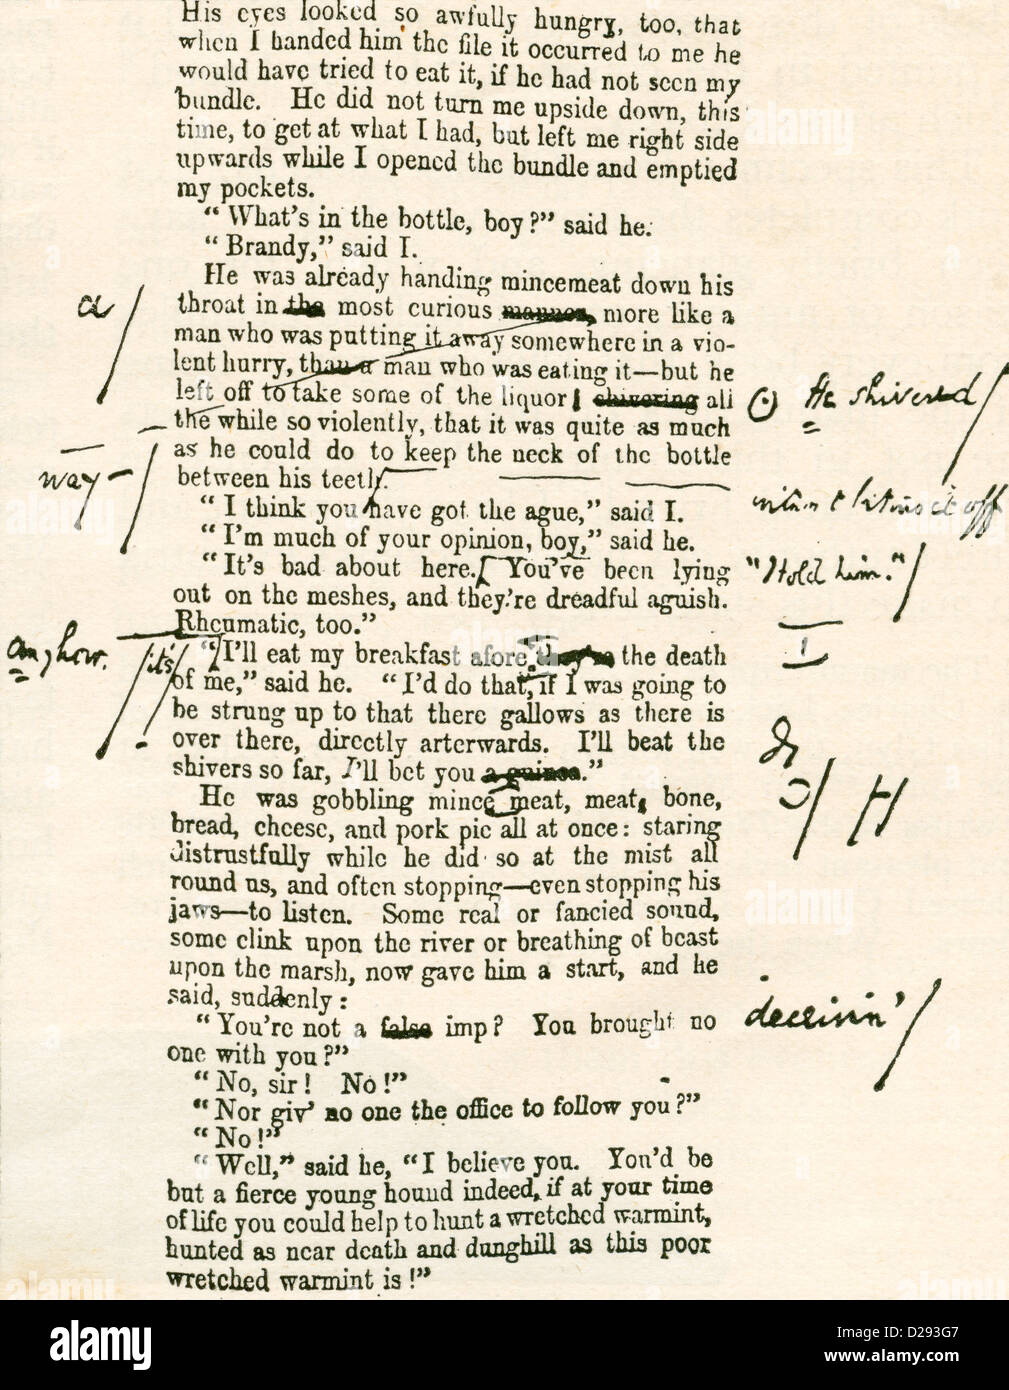 Page proof from Great Expectations, showing Charles Dickens's hand written corrections. - Stock Image